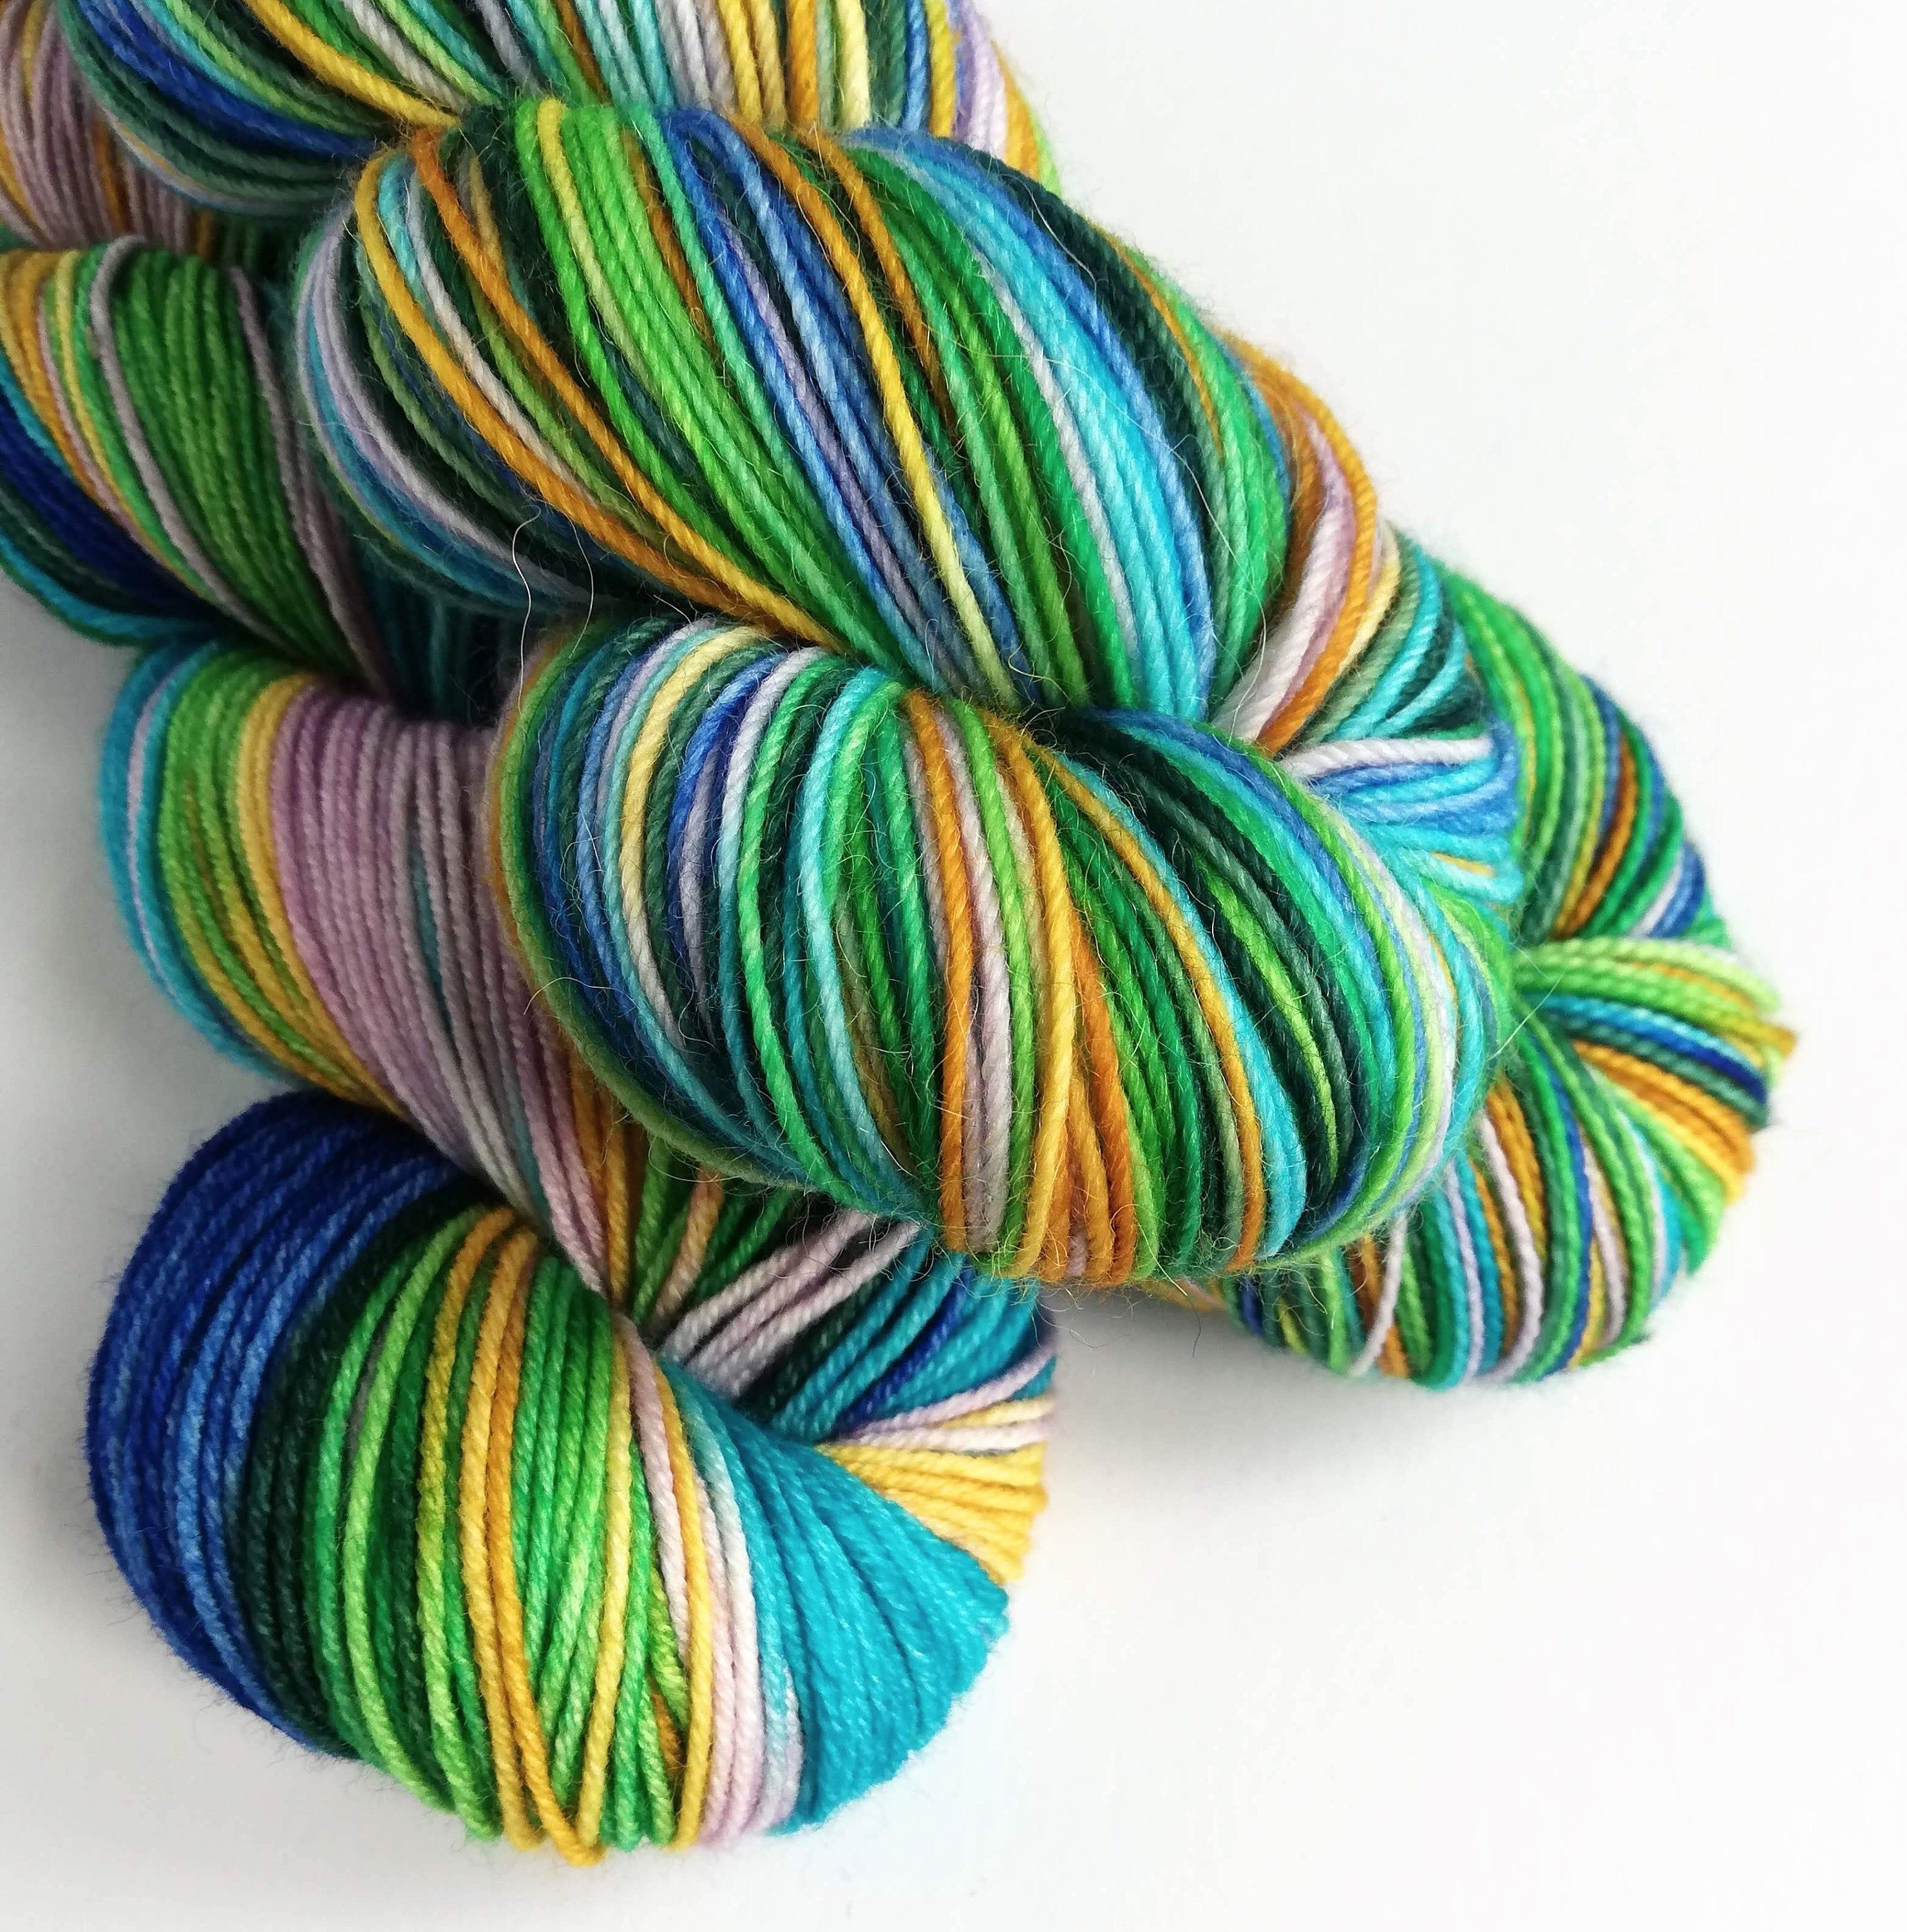 Pin On All About Yarn